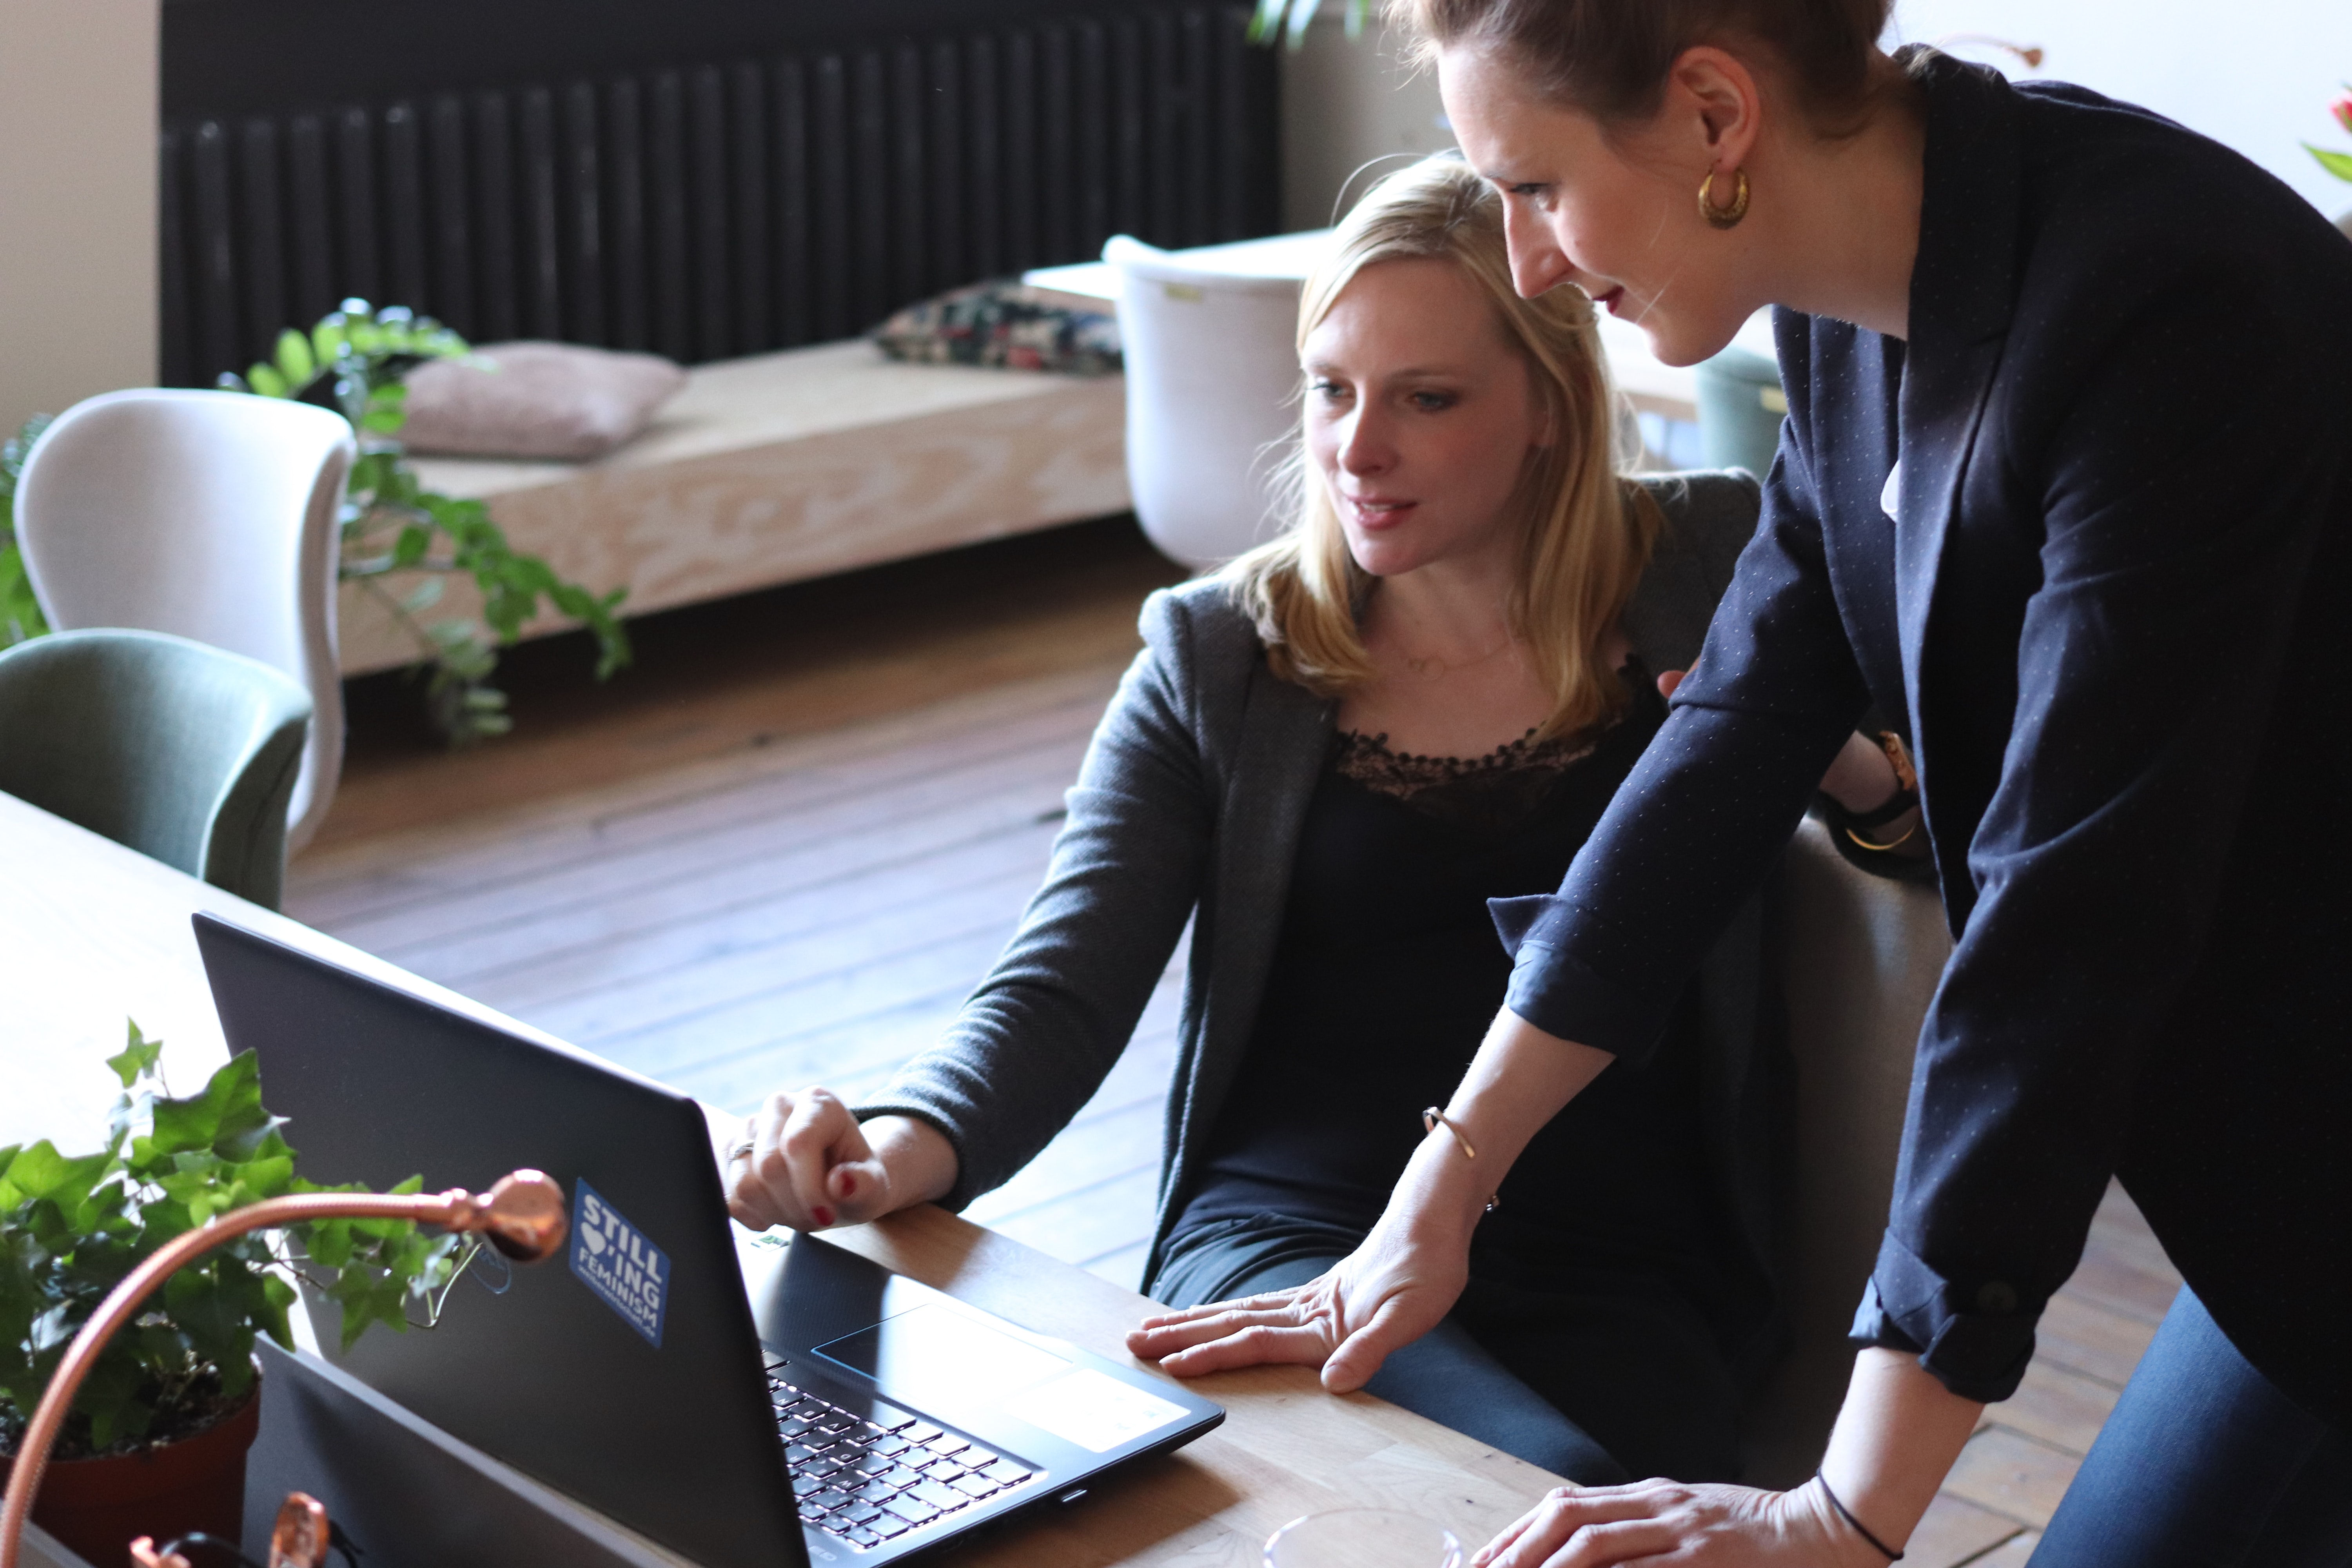 Posten Norge Group chose a company-wide leadership training program.